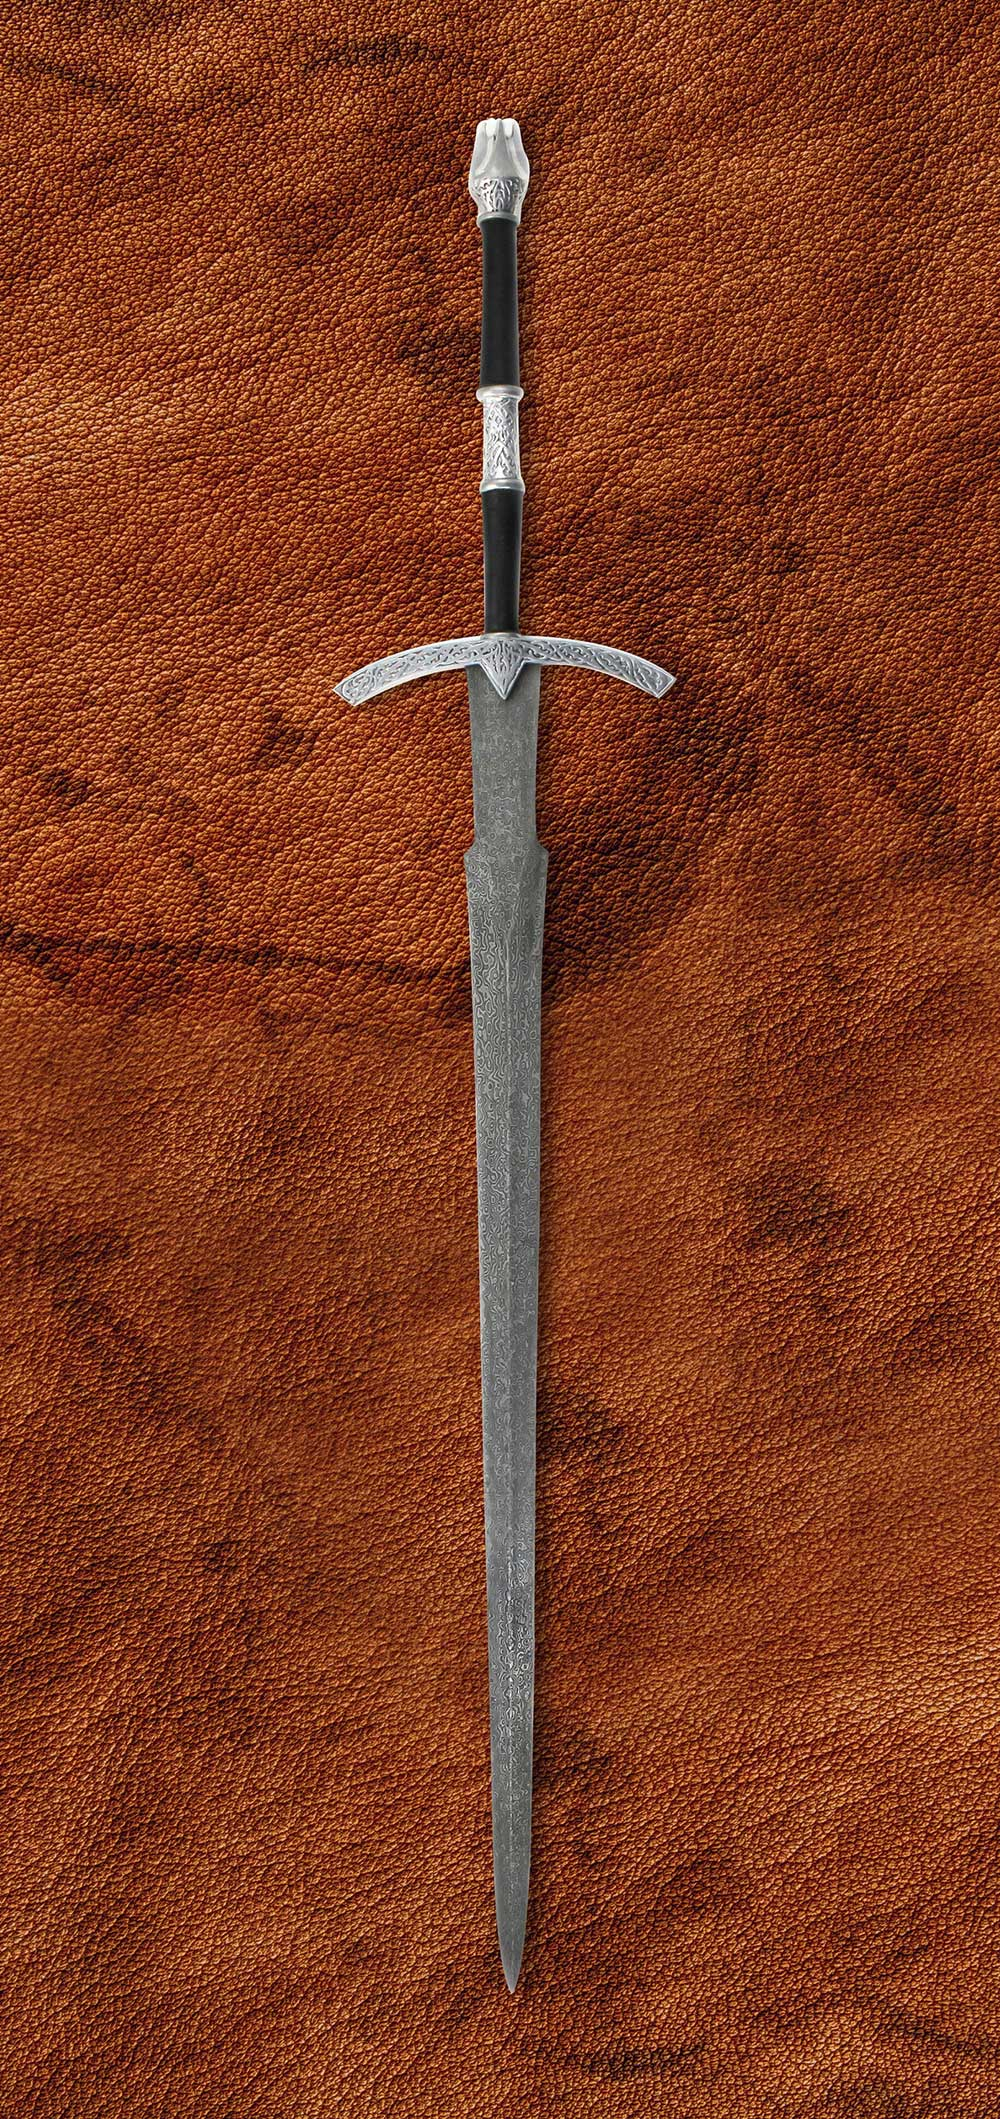 damascus-witchking-lord-of-the-rings-sword-1609